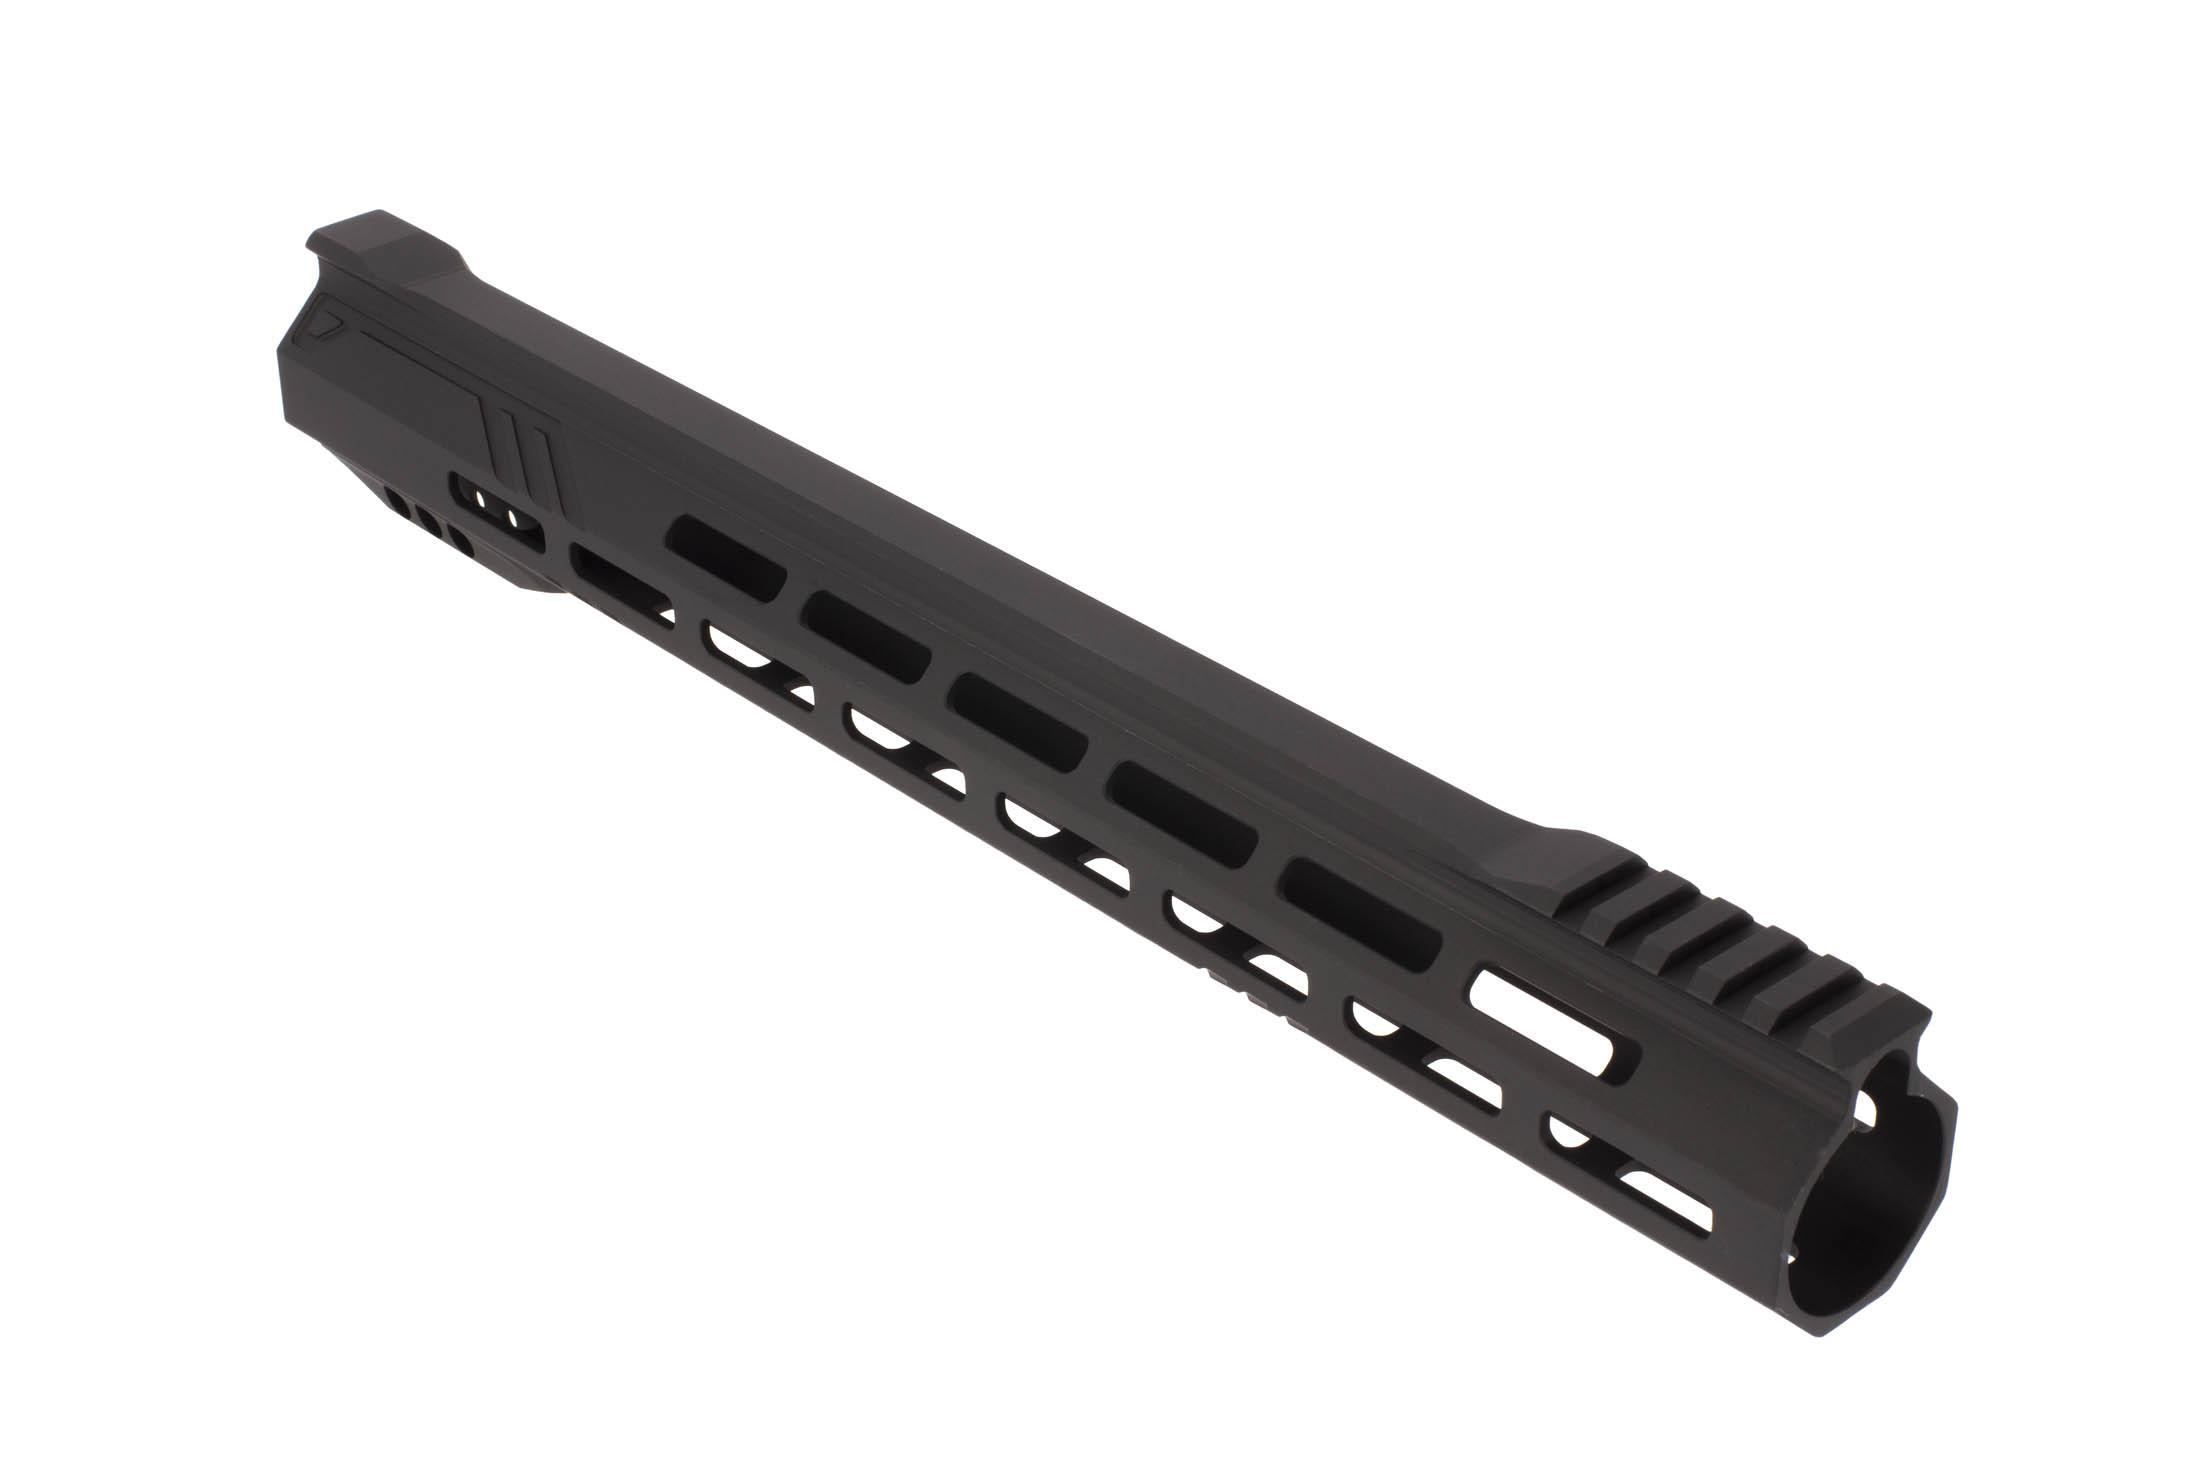 The RISE Armament 15in Stinger Slimline M-LOK Handguard is hardcoat anodized black to Military specifications.